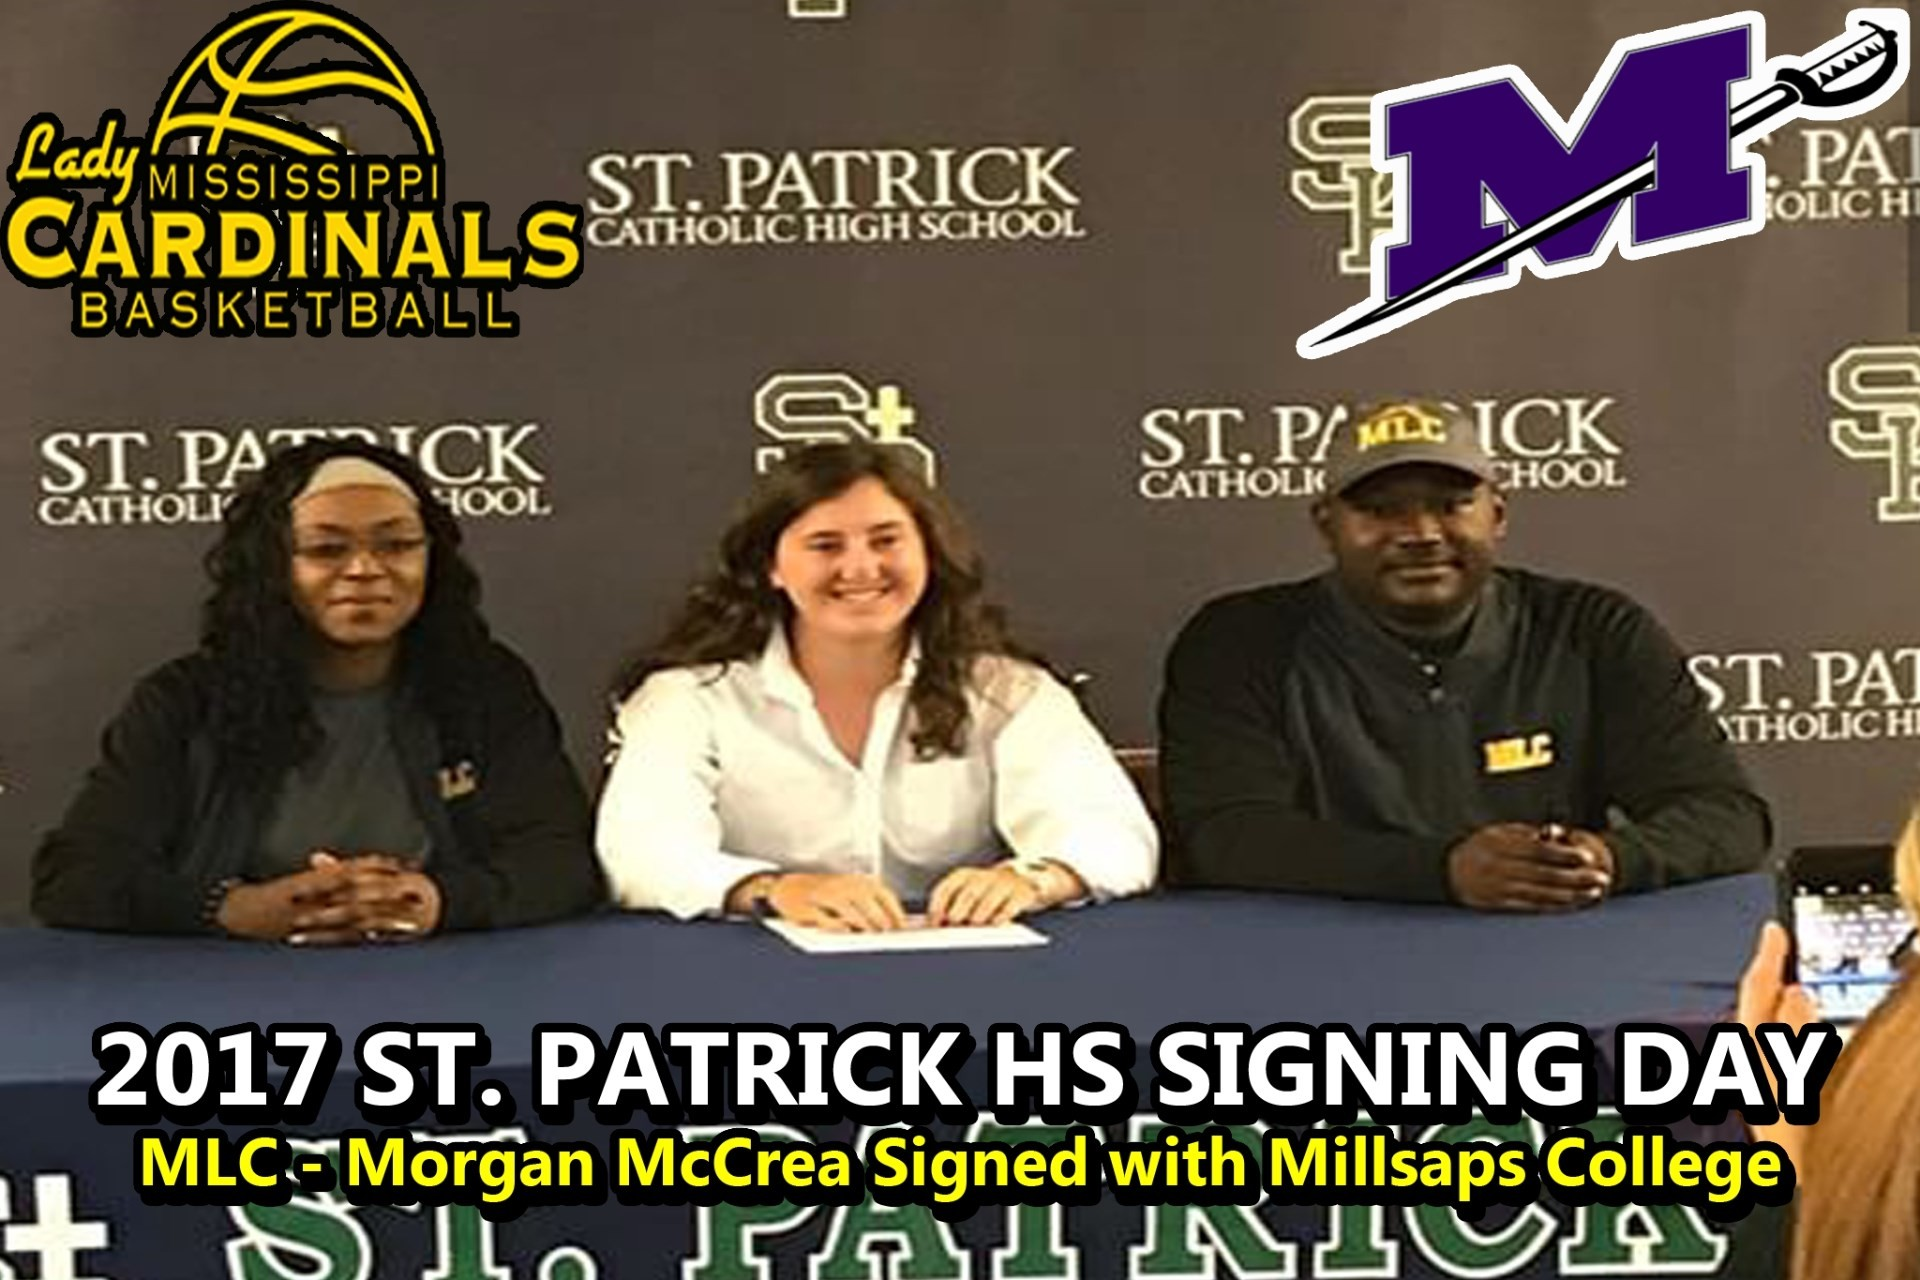 2017 MLC MORGAN MCCREA SIGNING DAY